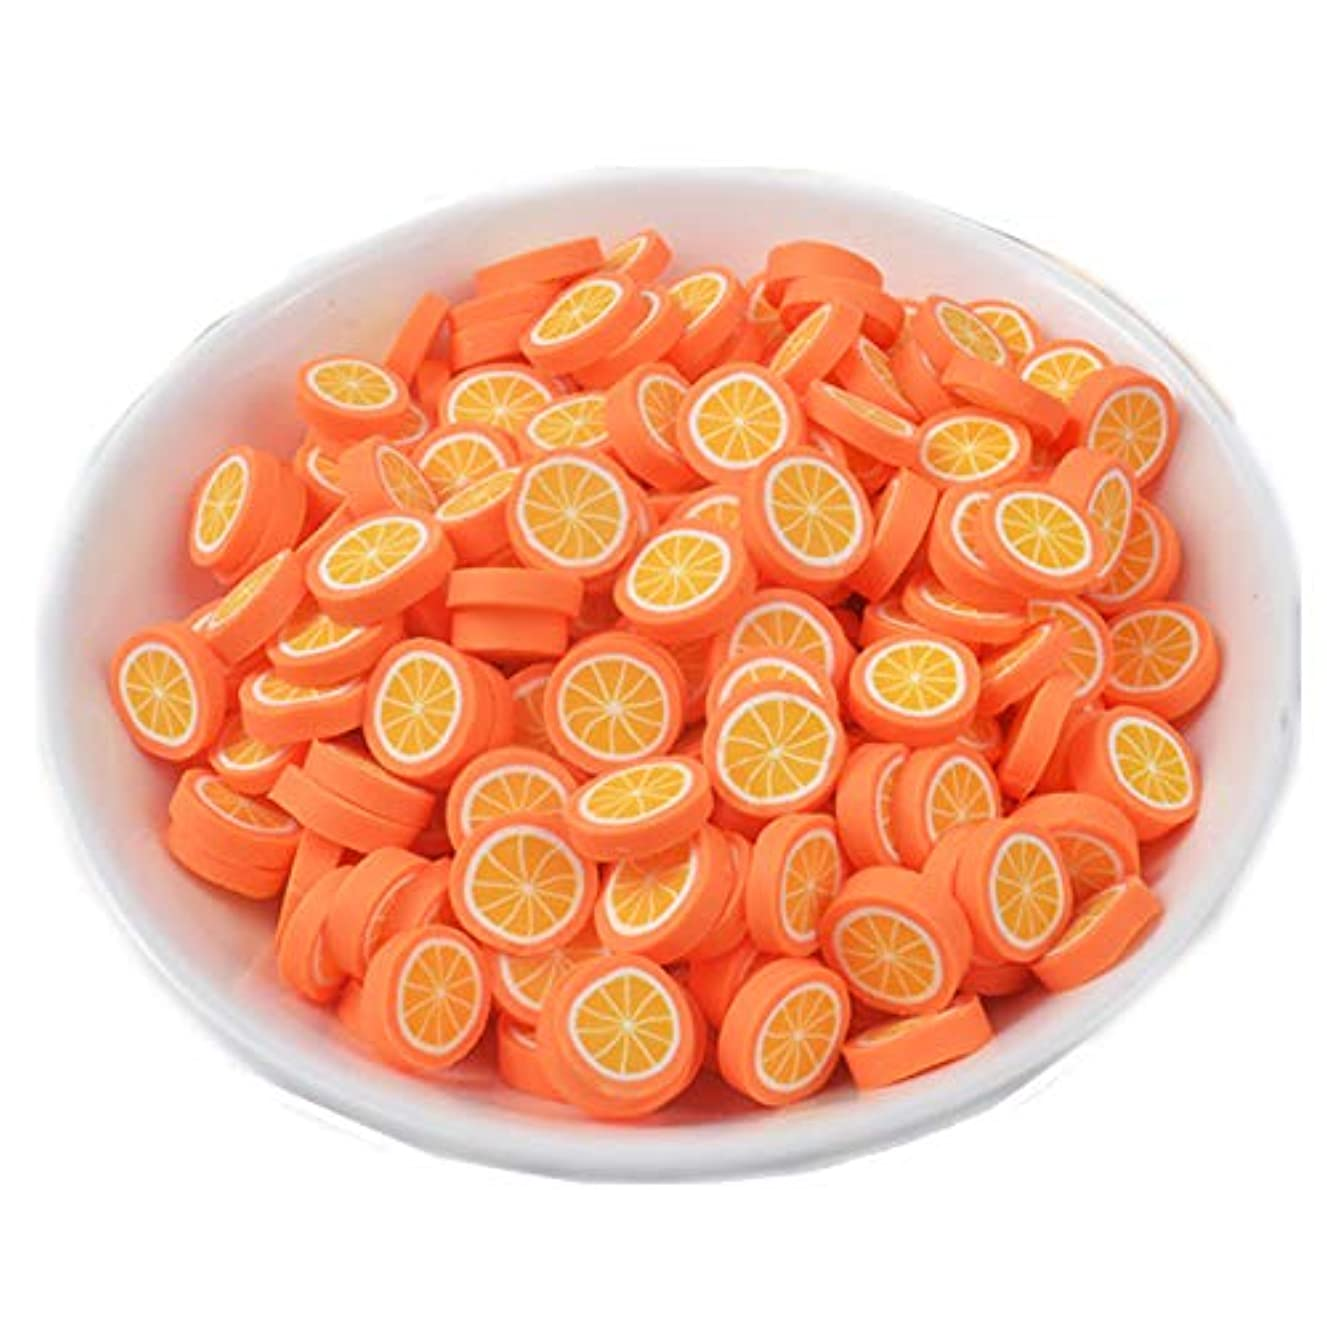 100 Pack Fruit Slime Charms Resin Flatbacks Buttons Polymer Clay Beads for Miniature Fairy Garden Hair Accessories DIY Scrapbooking Phone Case Jewelry Making Home Decoration (Orange)